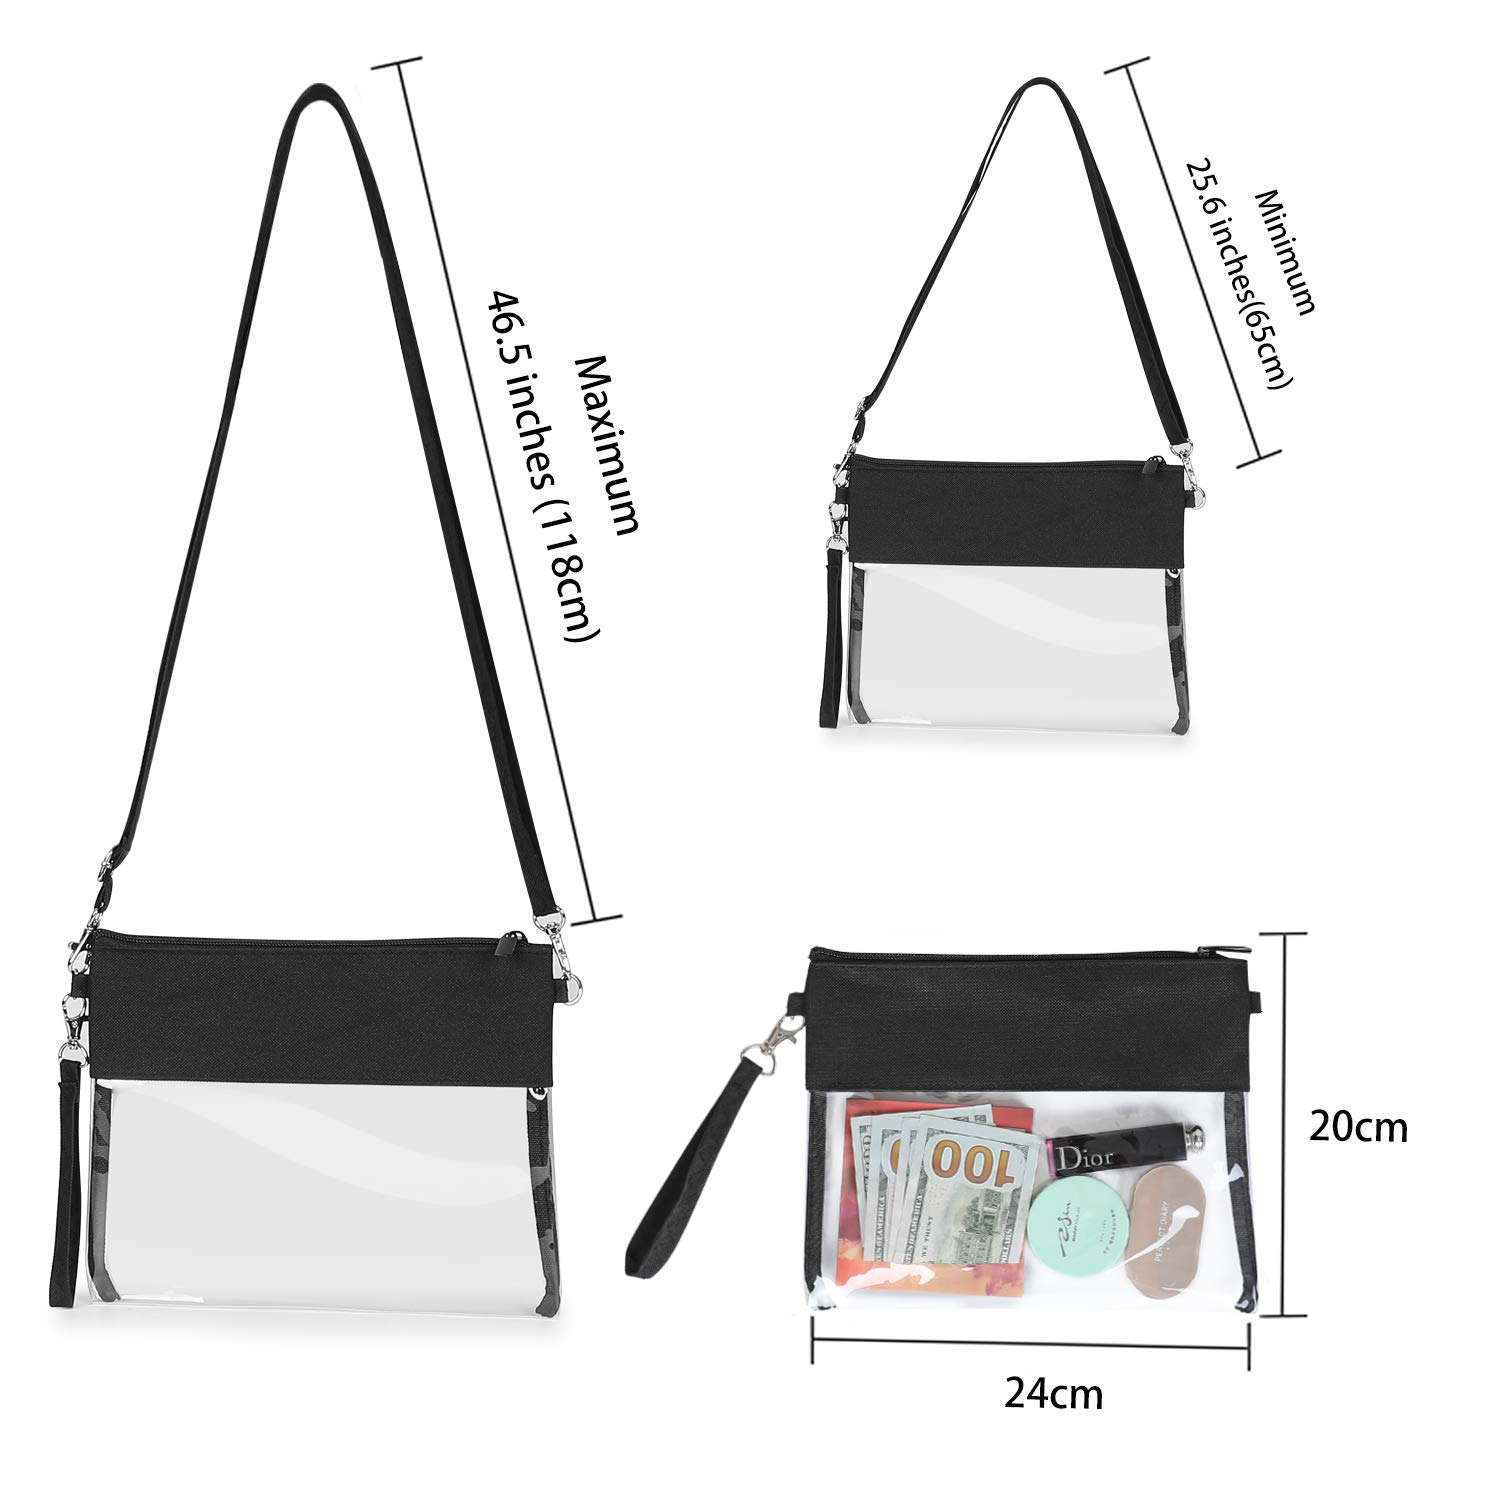 2 Pack Small Clear bag Stadium Approved See Through Bag for PGA, NFL, NCAA